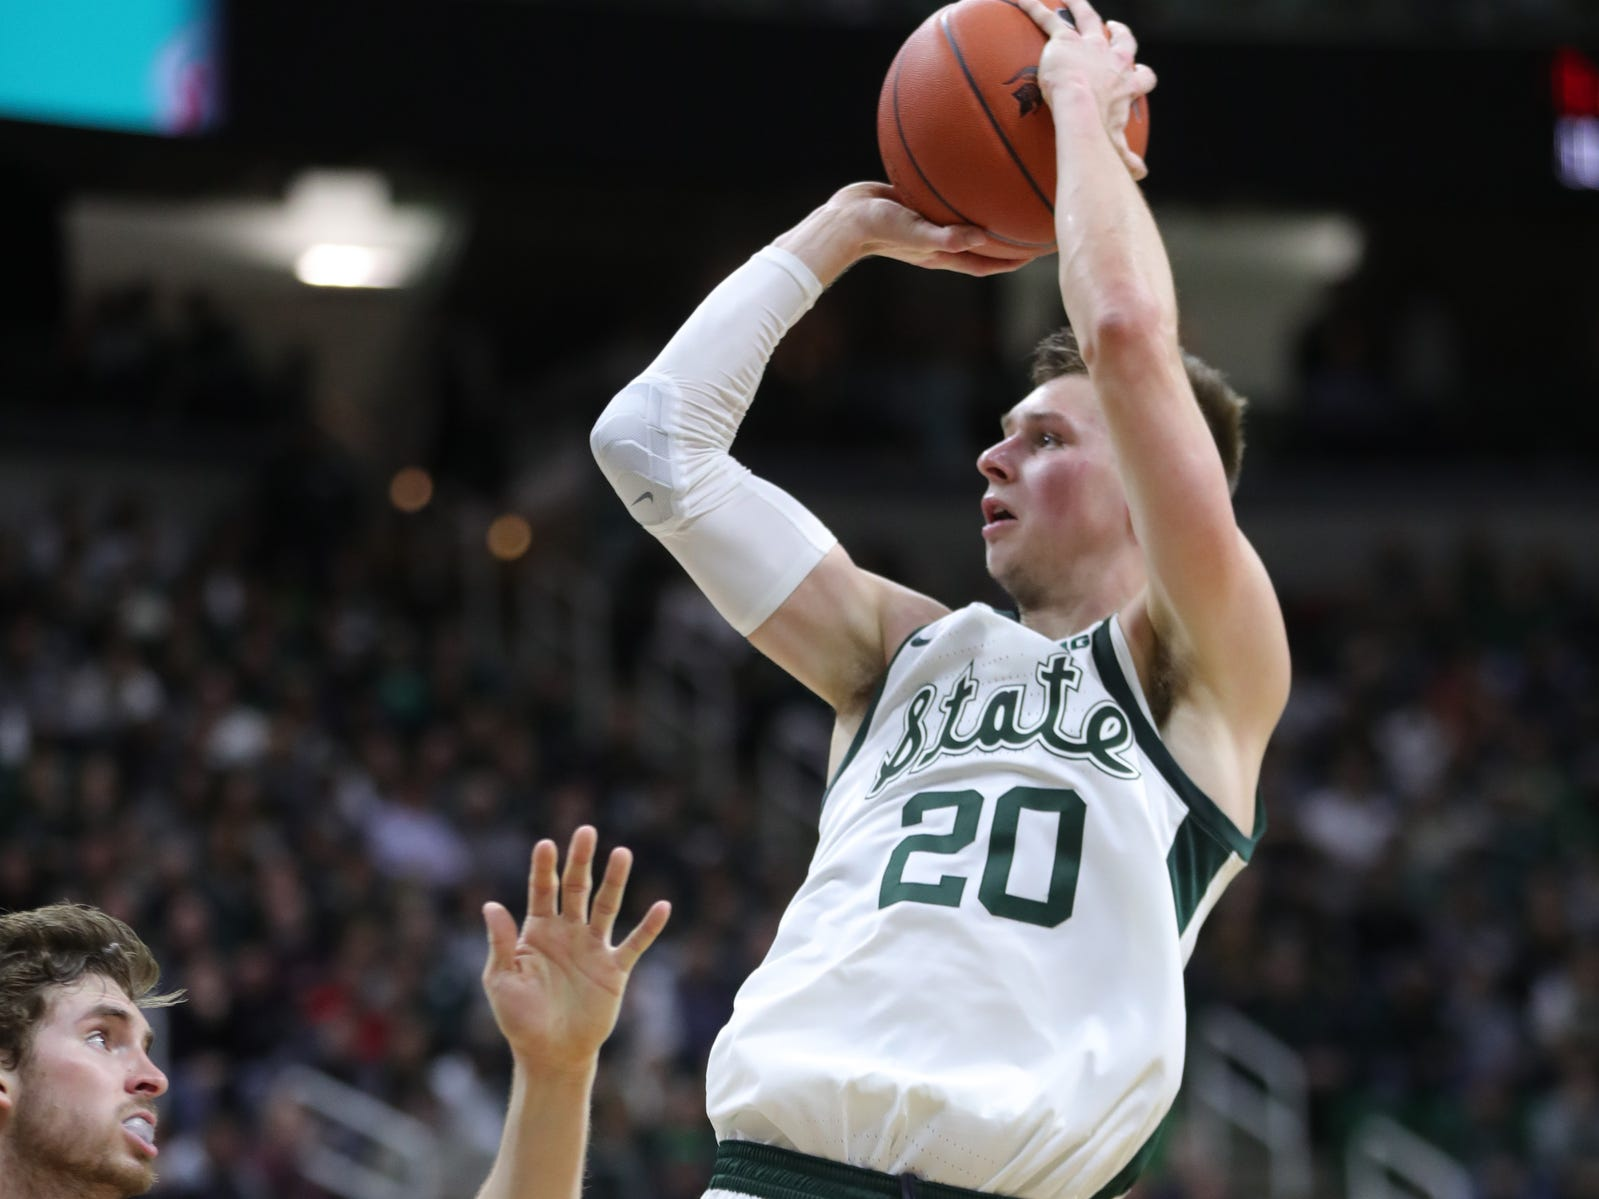 Michigan State guard Matt McQuaid scores against Purdue guard Ryan Cline during first half action Tuesday, September 8, 2019 at the Breslin Center in East Lansing, Mich.